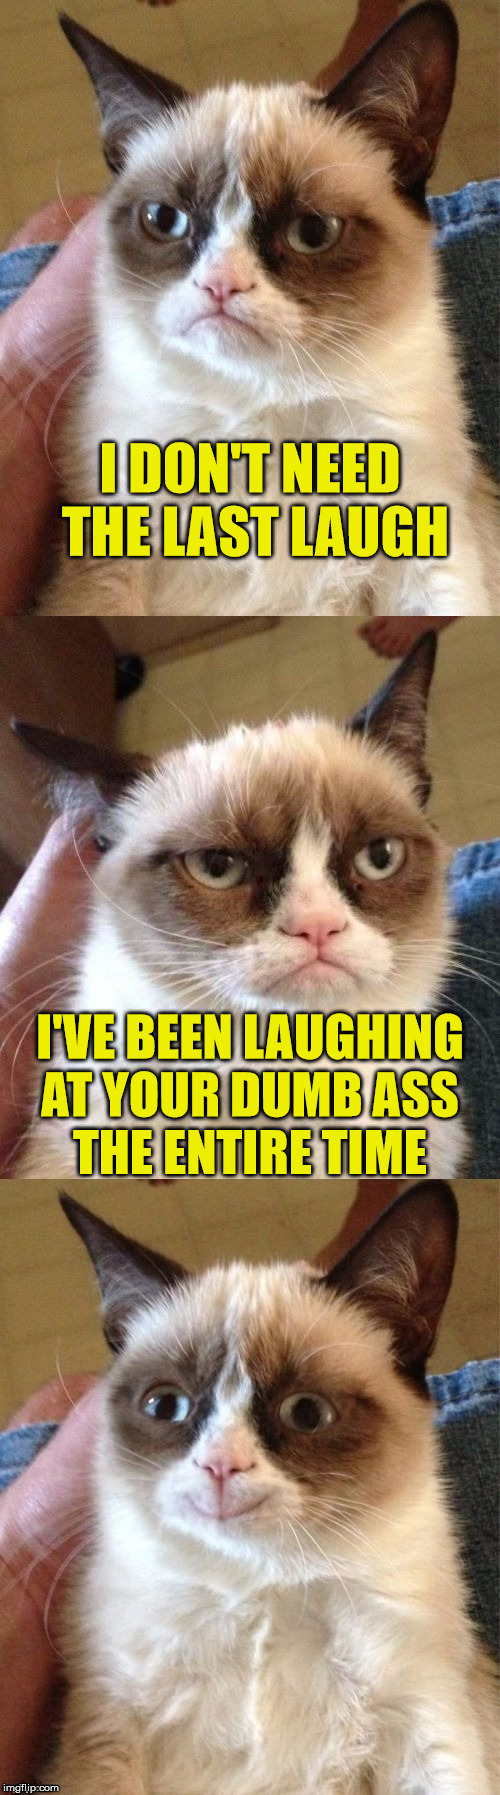 Bad Pun Grumpy Cat | I DON'T NEED THE LAST LAUGH I'VE BEEN LAUGHING AT YOUR DUMB ASS      THE ENTIRE TIME | image tagged in bad pun grumpy cat,memes,laugh | made w/ Imgflip meme maker